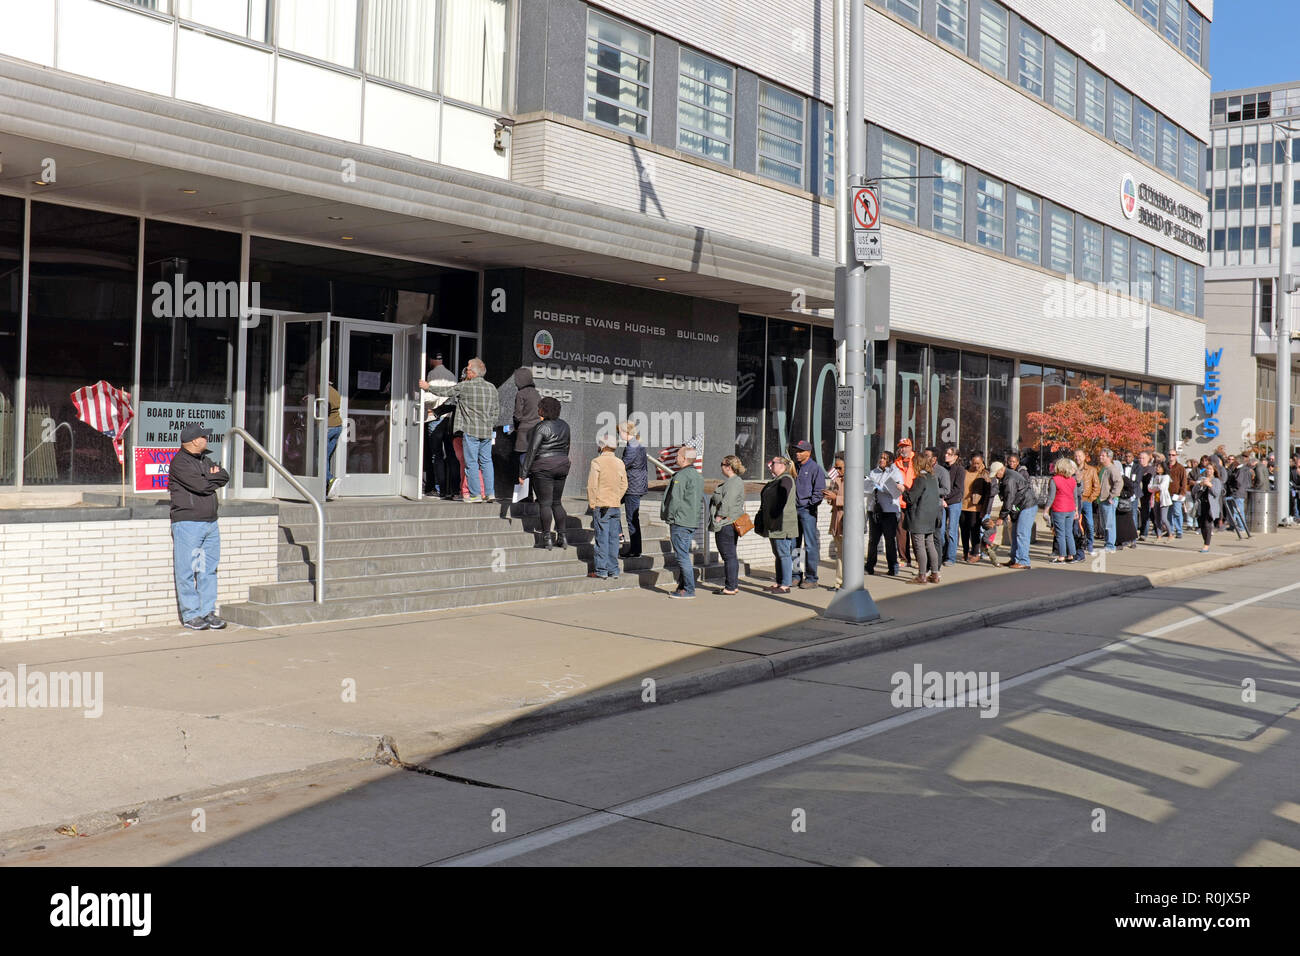 Voters wait in line at the downtown Cleveland Cuyahoga County Board of Elections to cast their votes during the 2018 Midterm Elections. - Stock Image